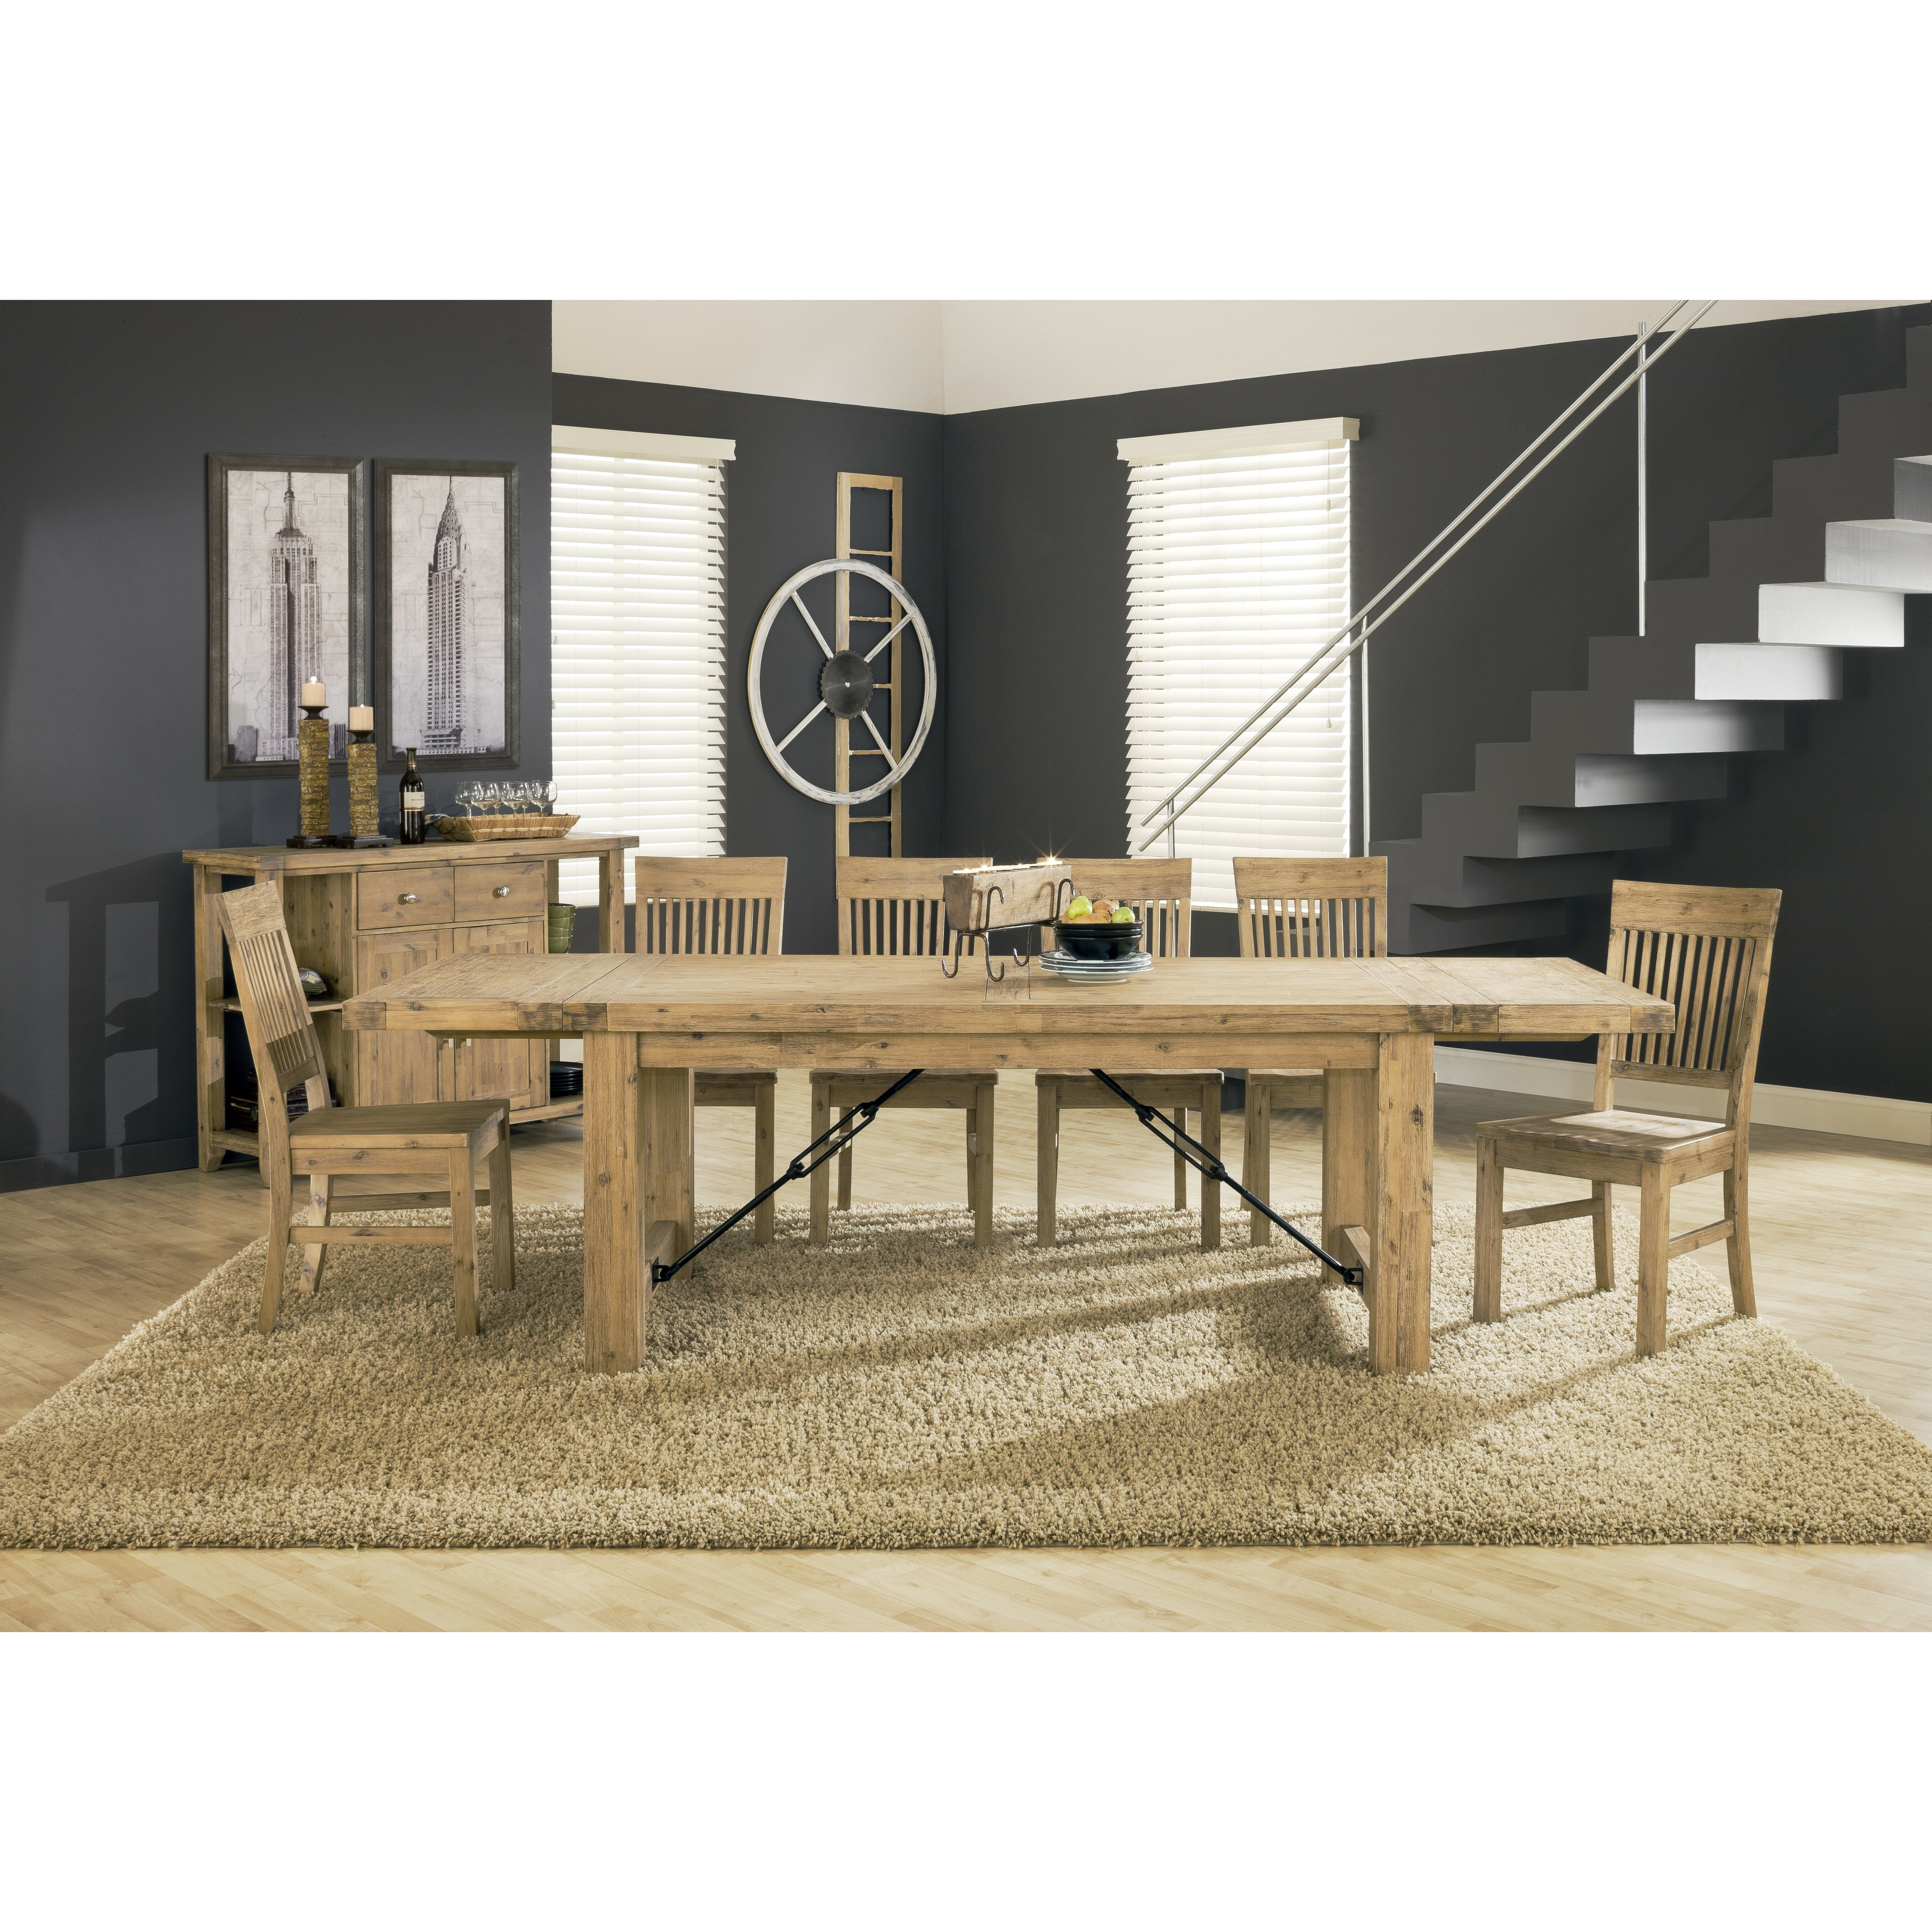 Standard Furniture Cambria Rectangular White Wood And: Modus Autumn Extendable Dining Table & Reviews